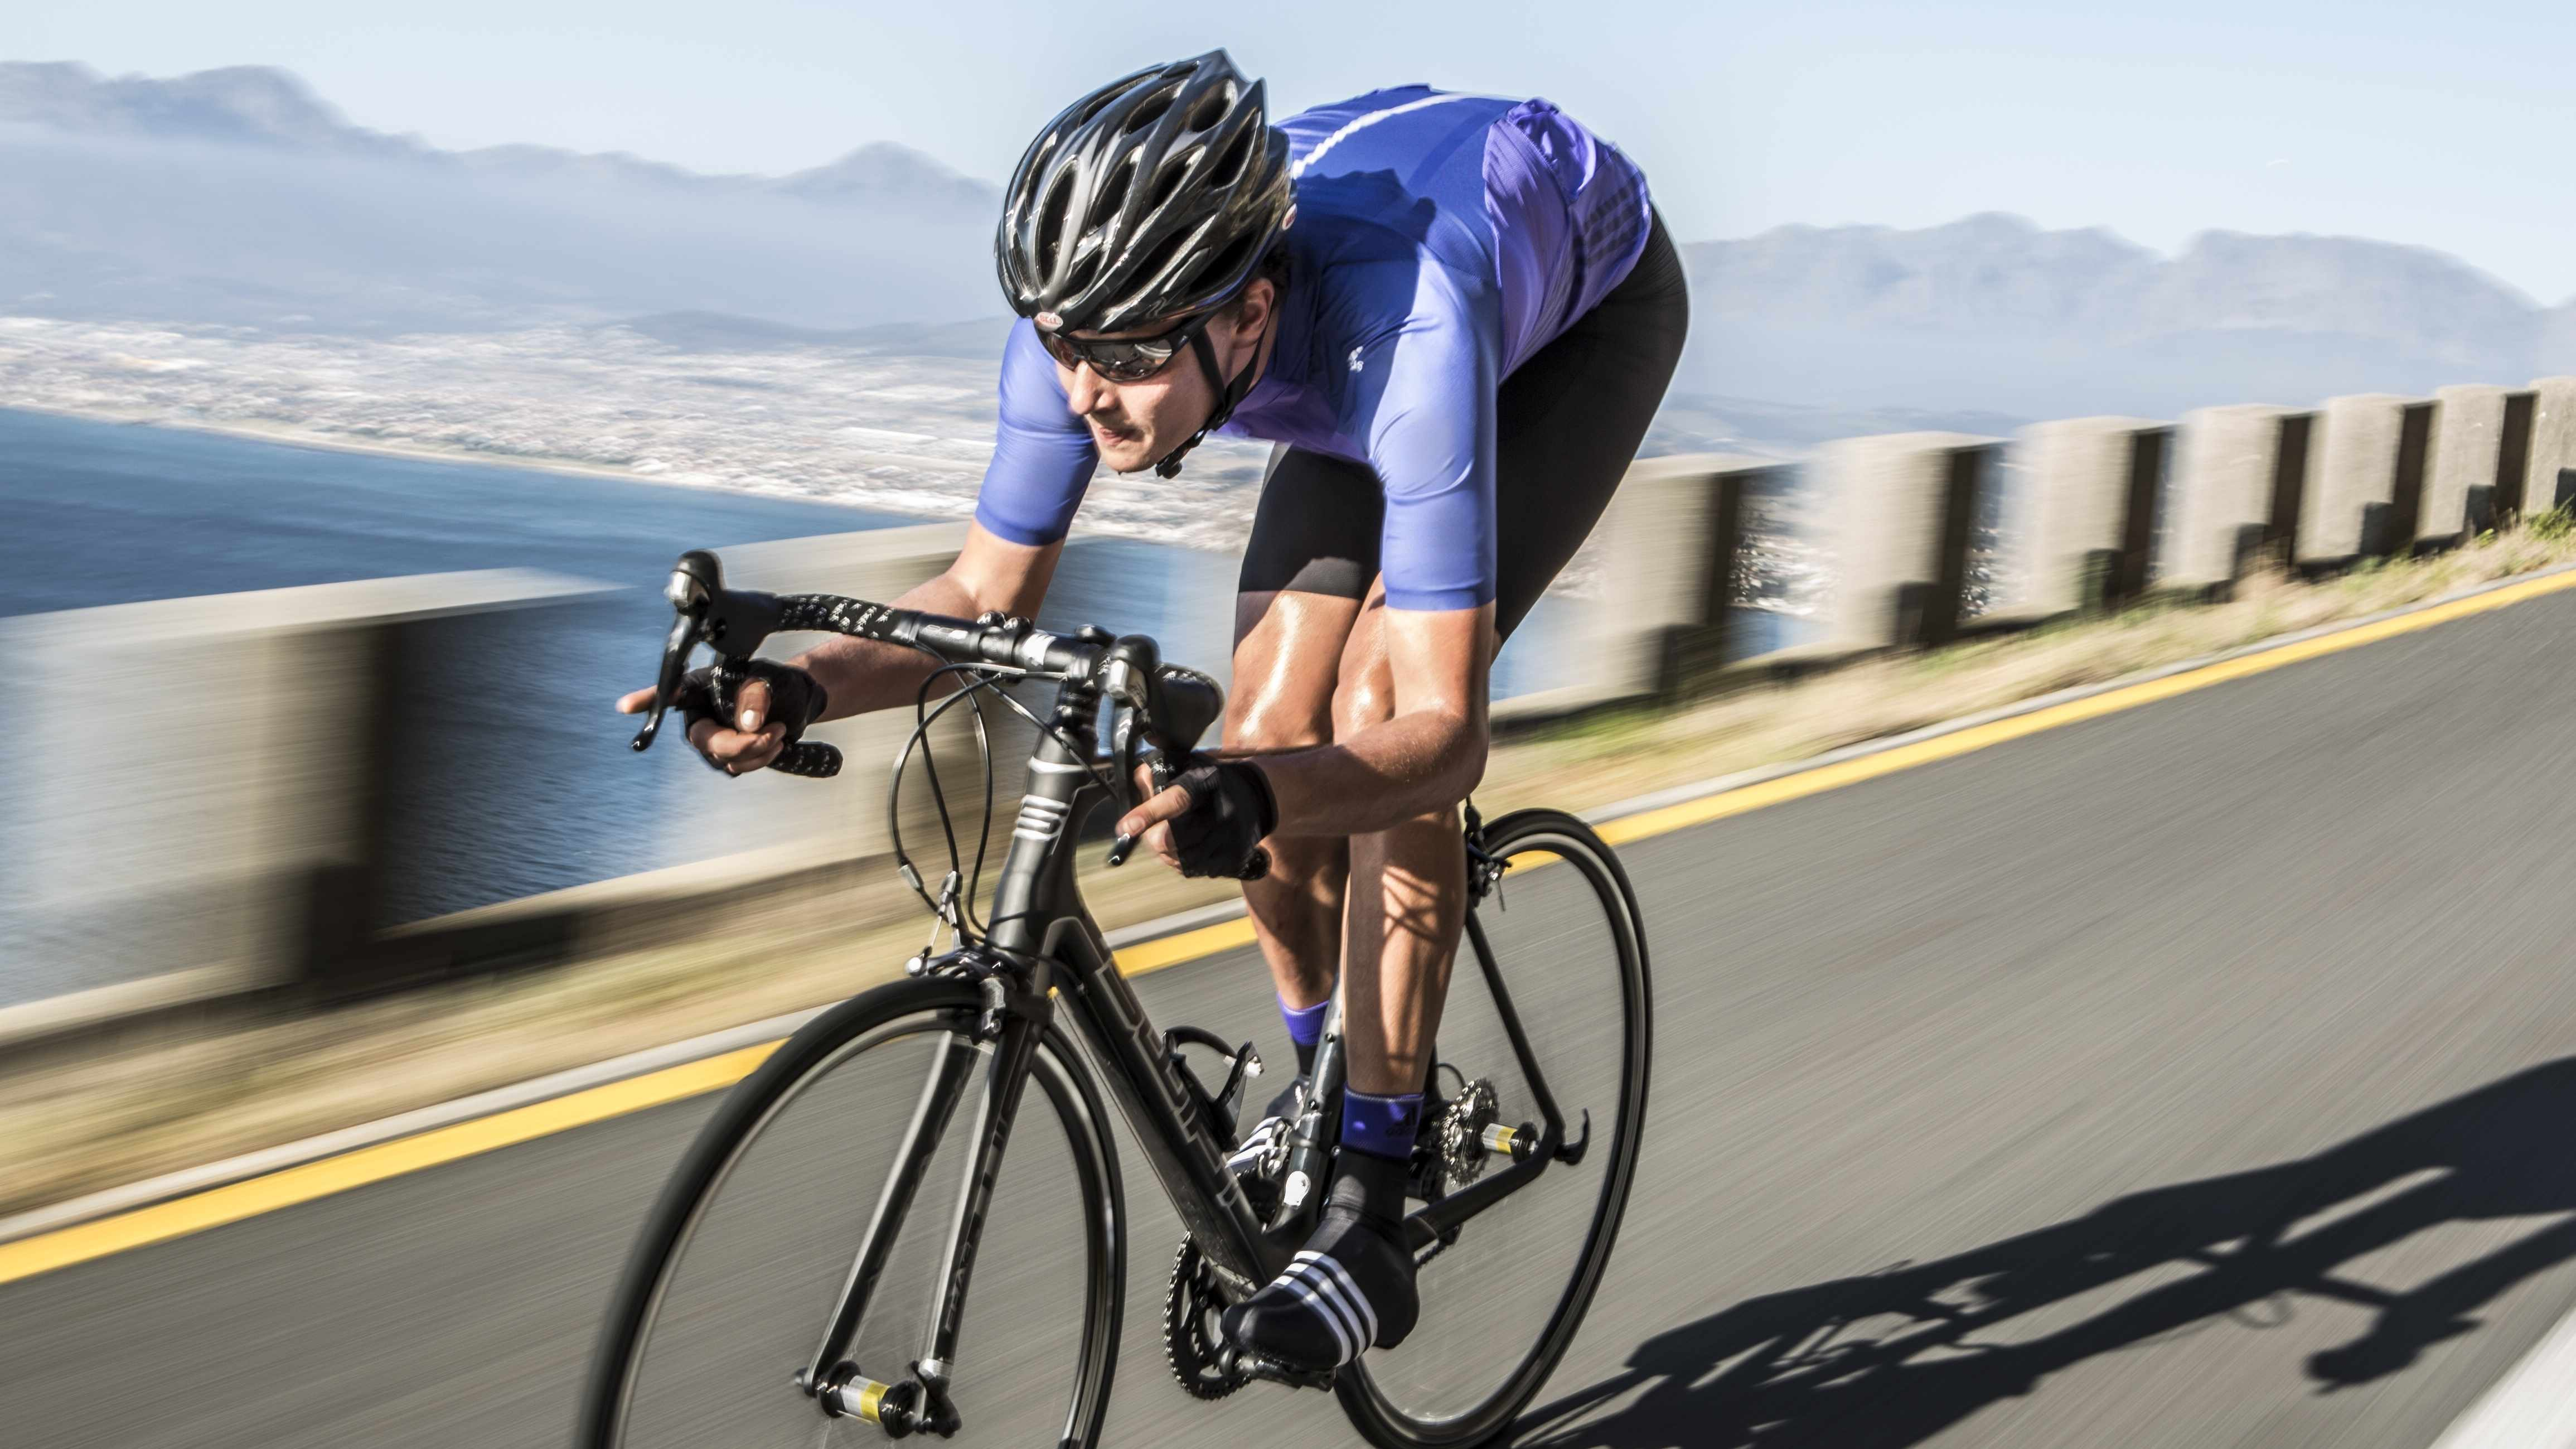 The Adizero jersey, Evasus bib shorts and socks together weigh only 200g